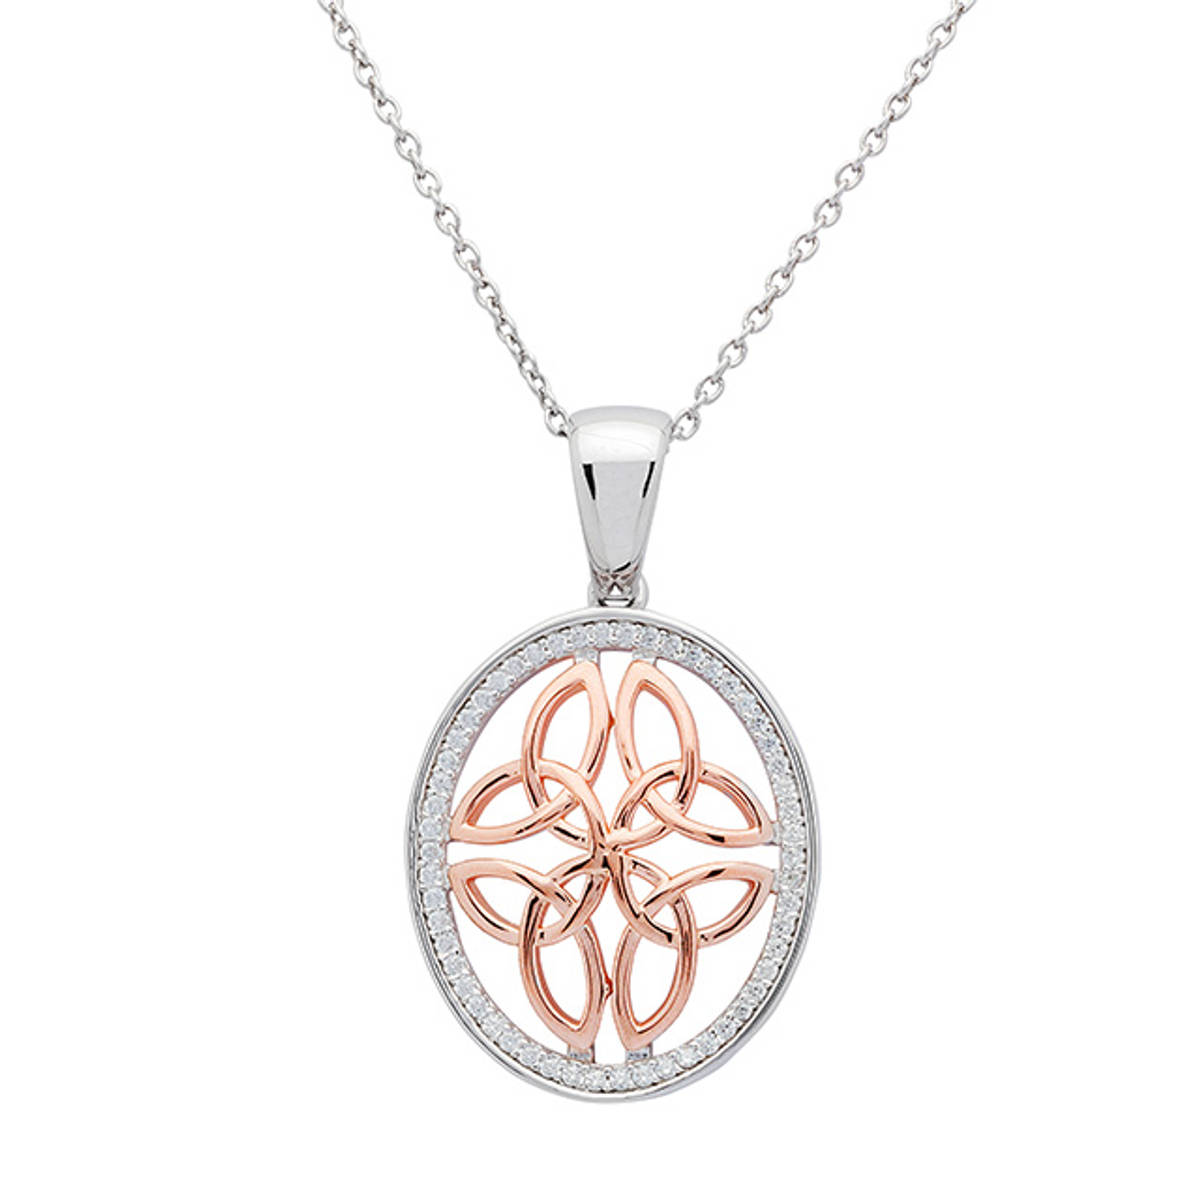 Sterling Silver Round Pendant with rose gold Celtic Knot surrounded by cubic zirconia.